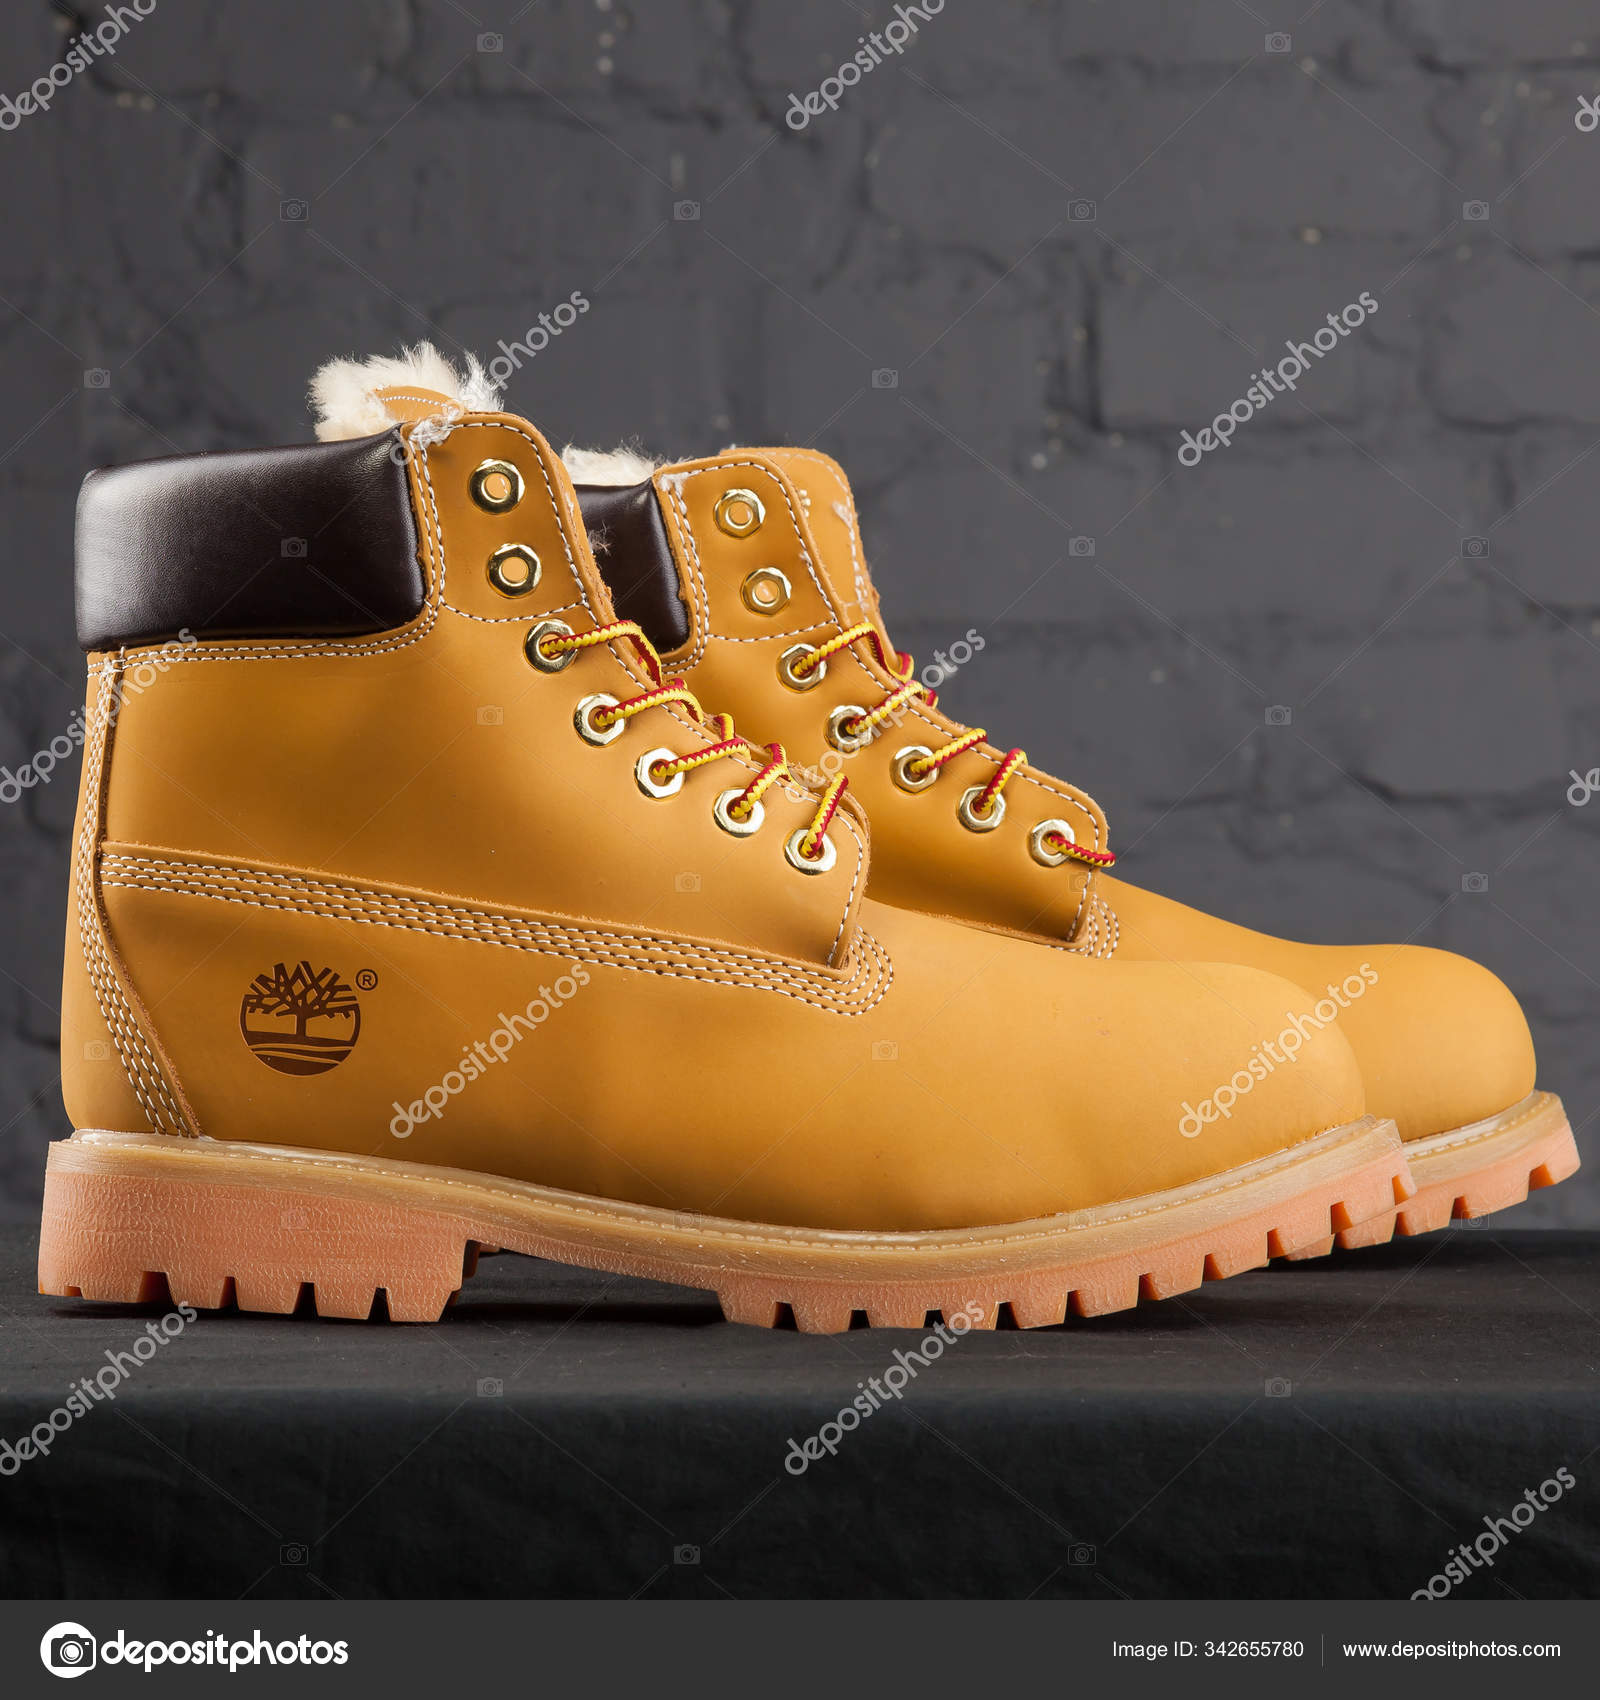 Maestro Convención Hermano  New Beautiful Colorful Nice Timberland Tracking Shoes Sneakers Trainers  Shows – Stock Editorial Photo © sozon #342655780